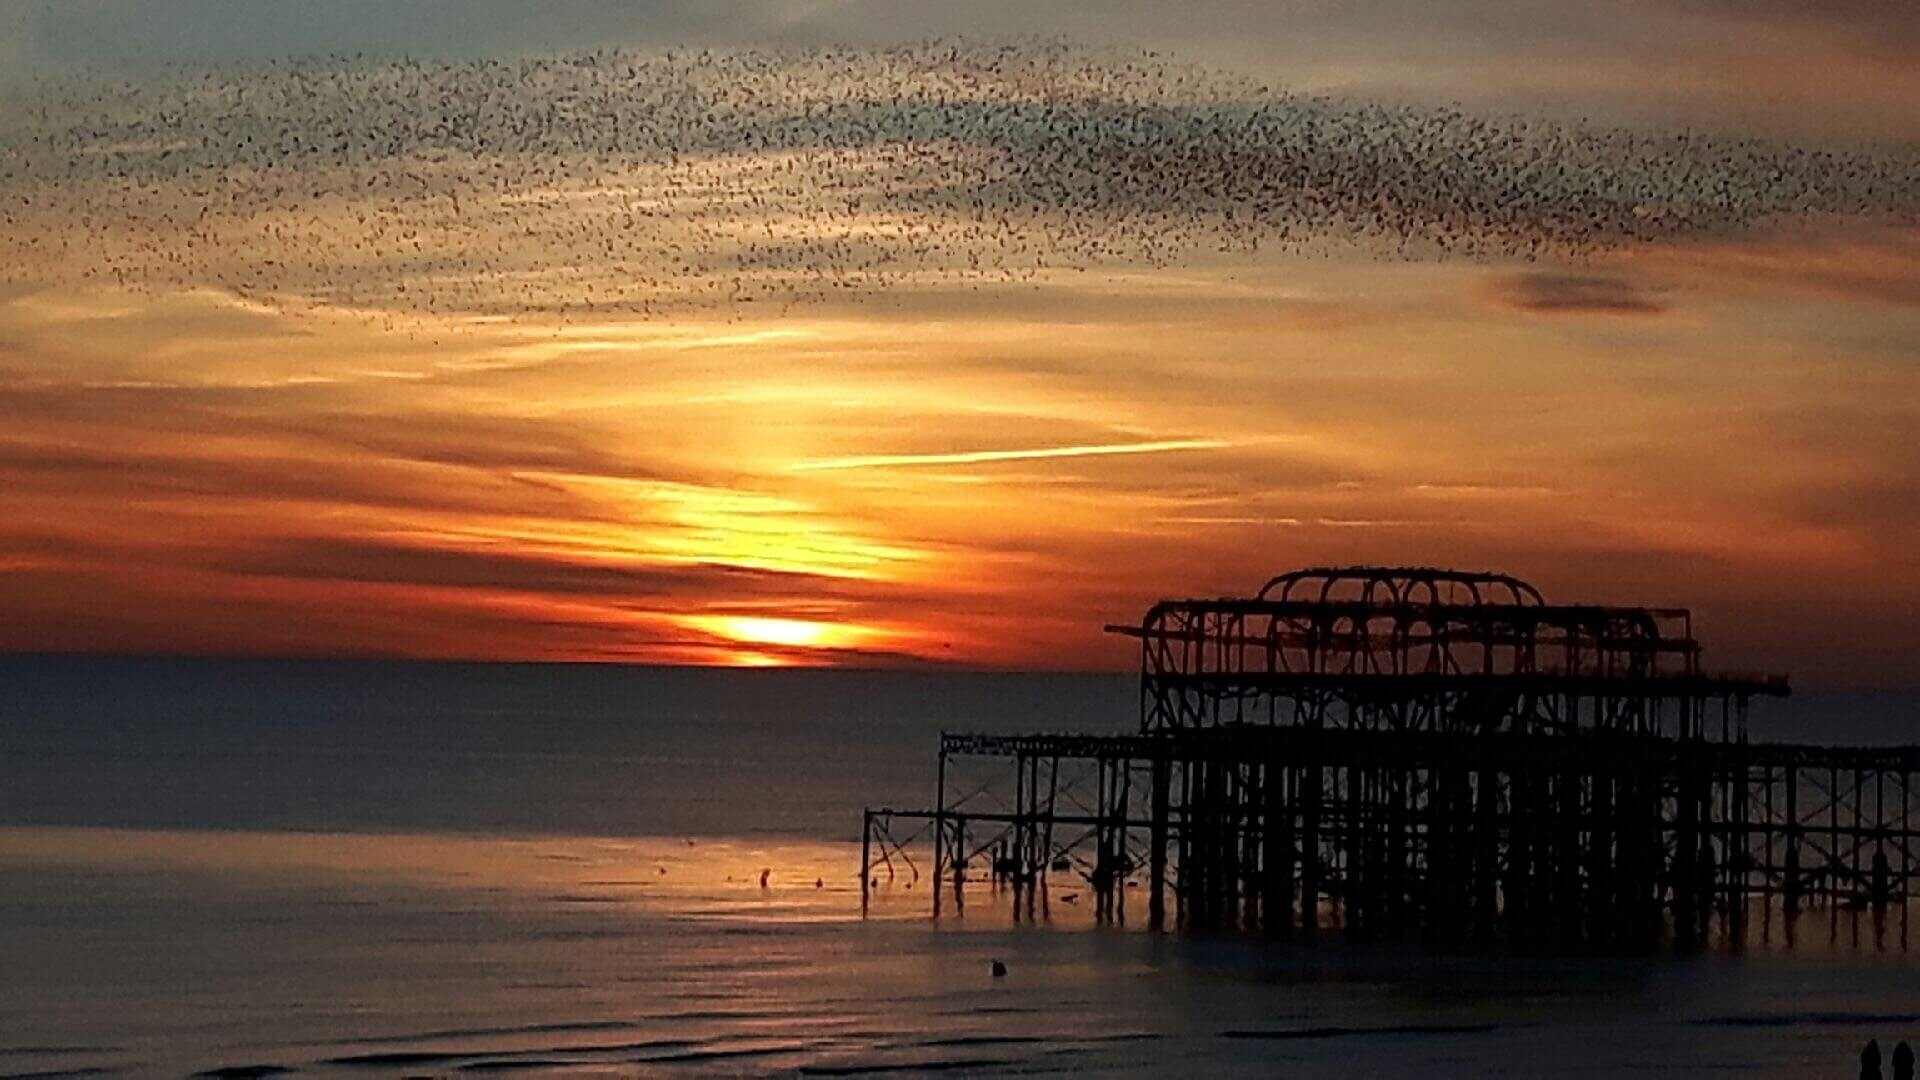 Beautiful sight of the starlings flying